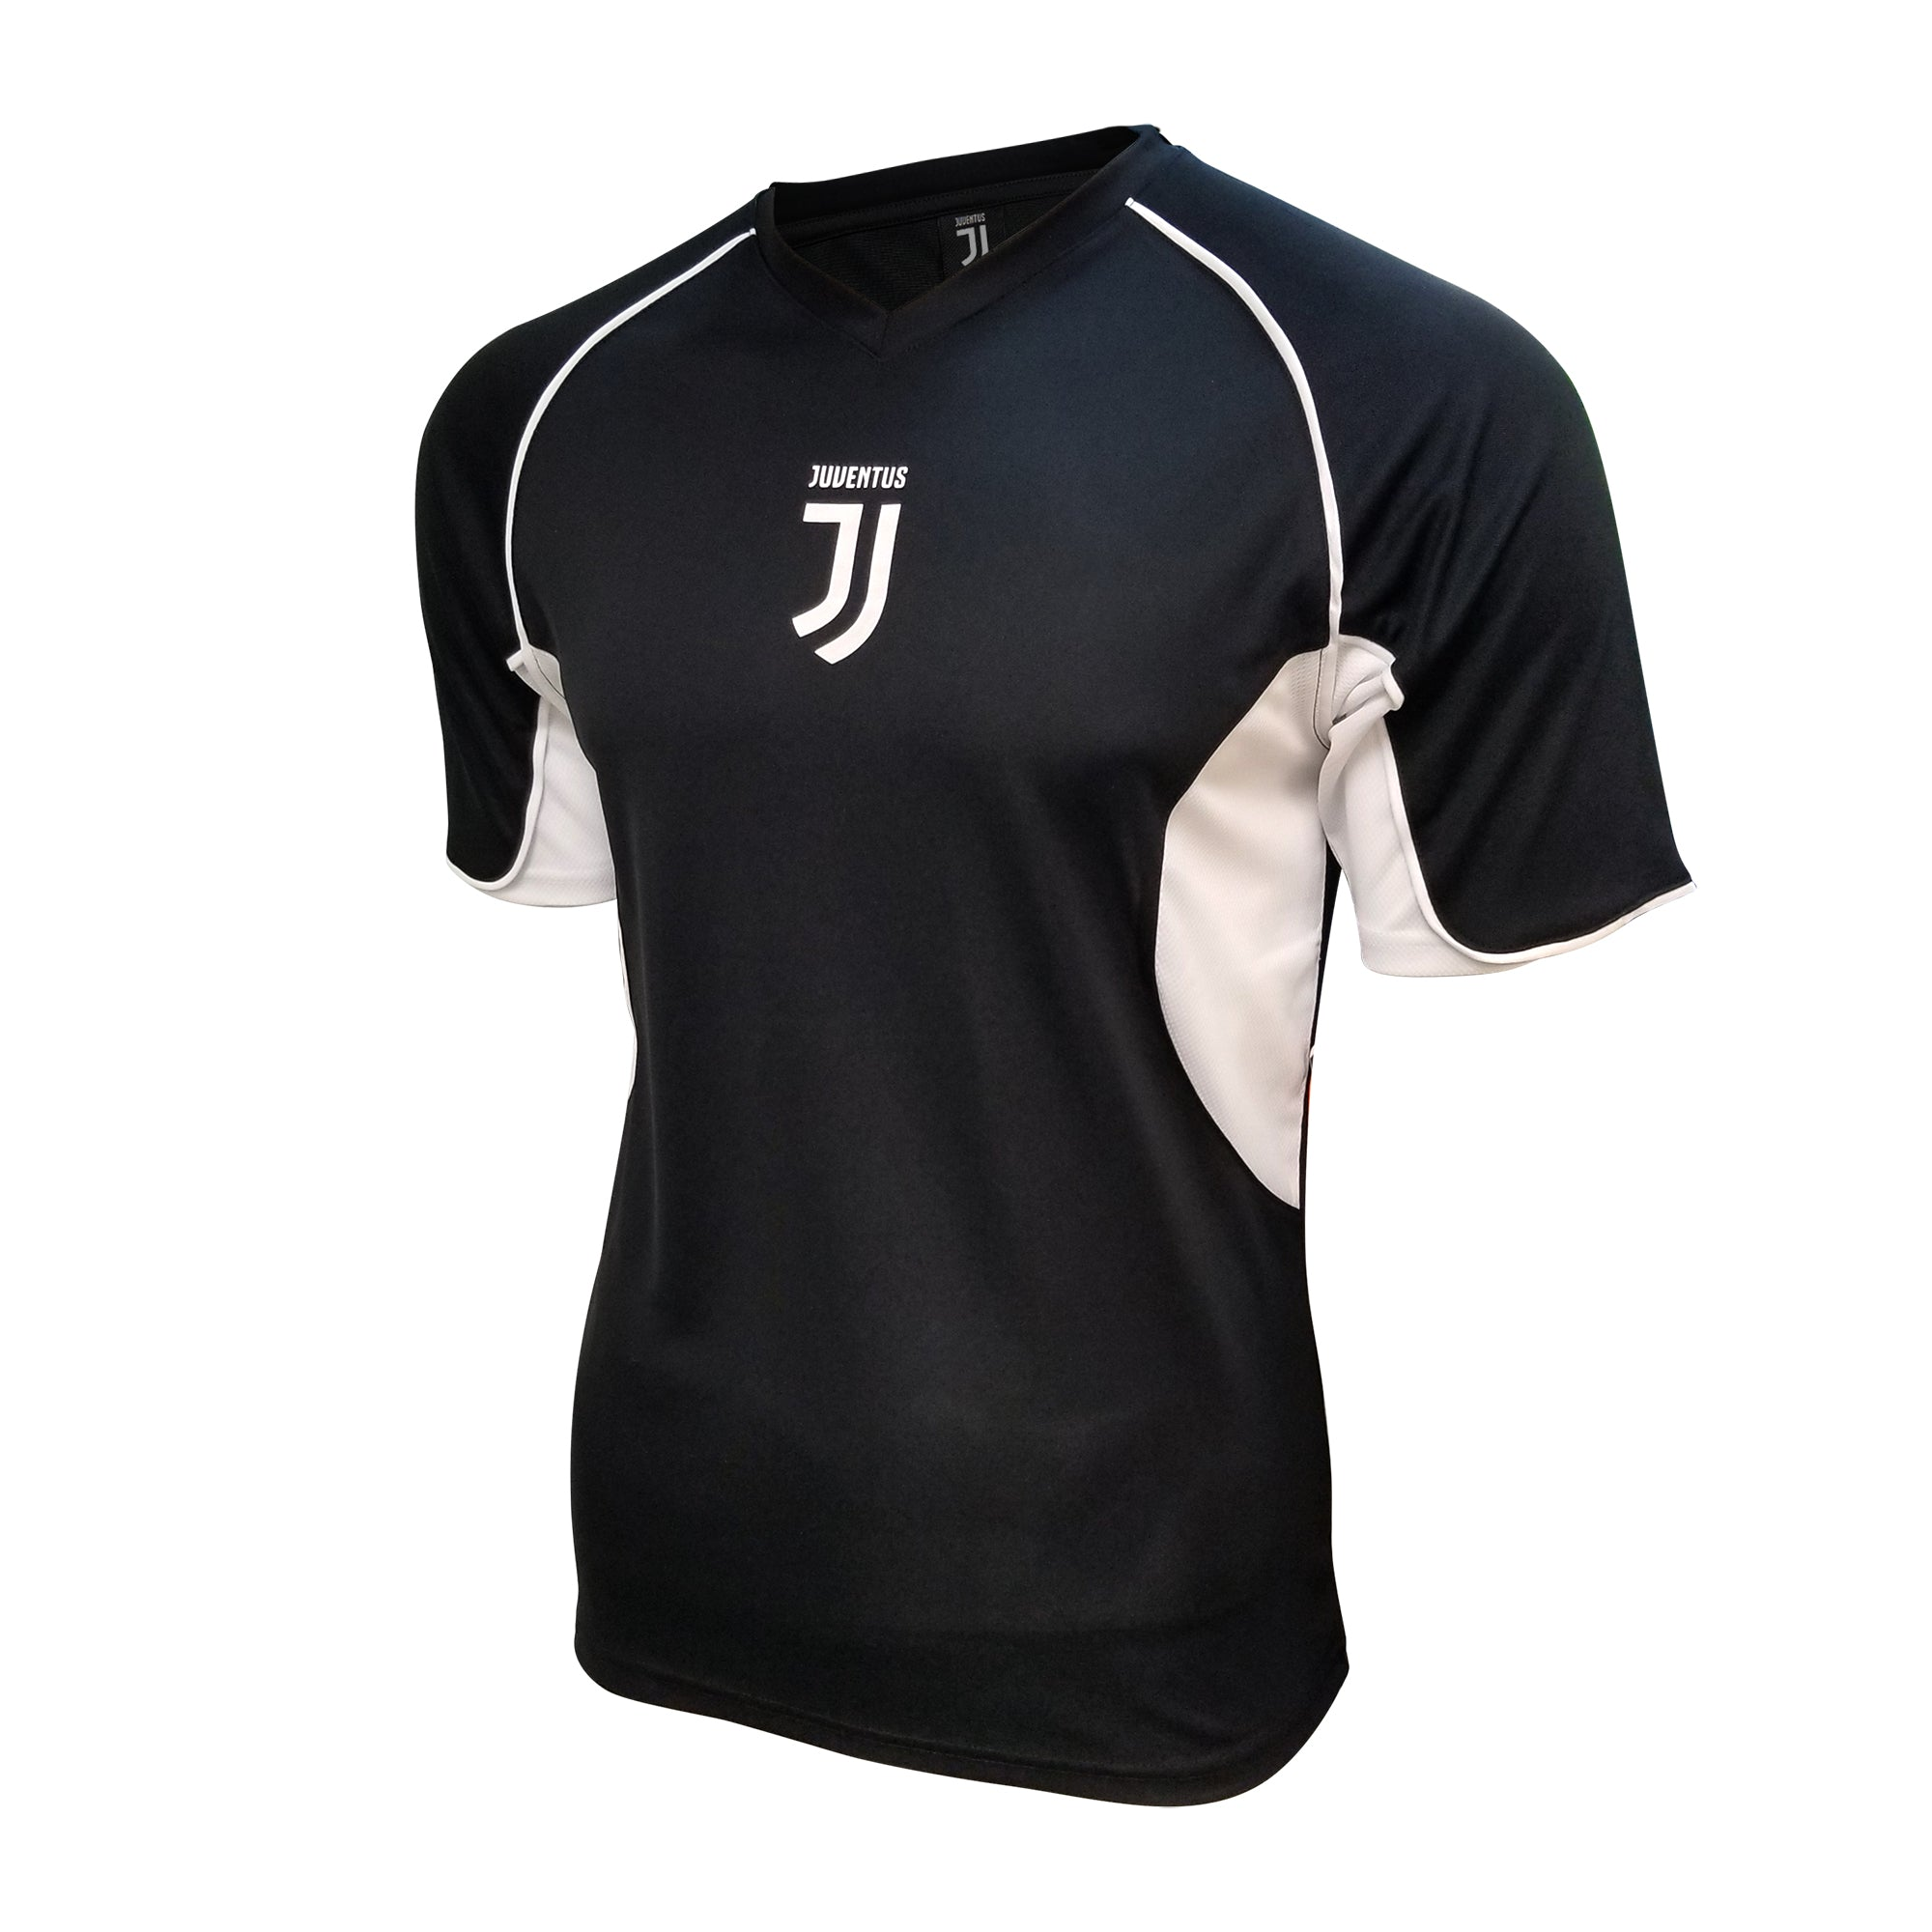 Juventus Rearview Stadium Class Poly Shirt - Black